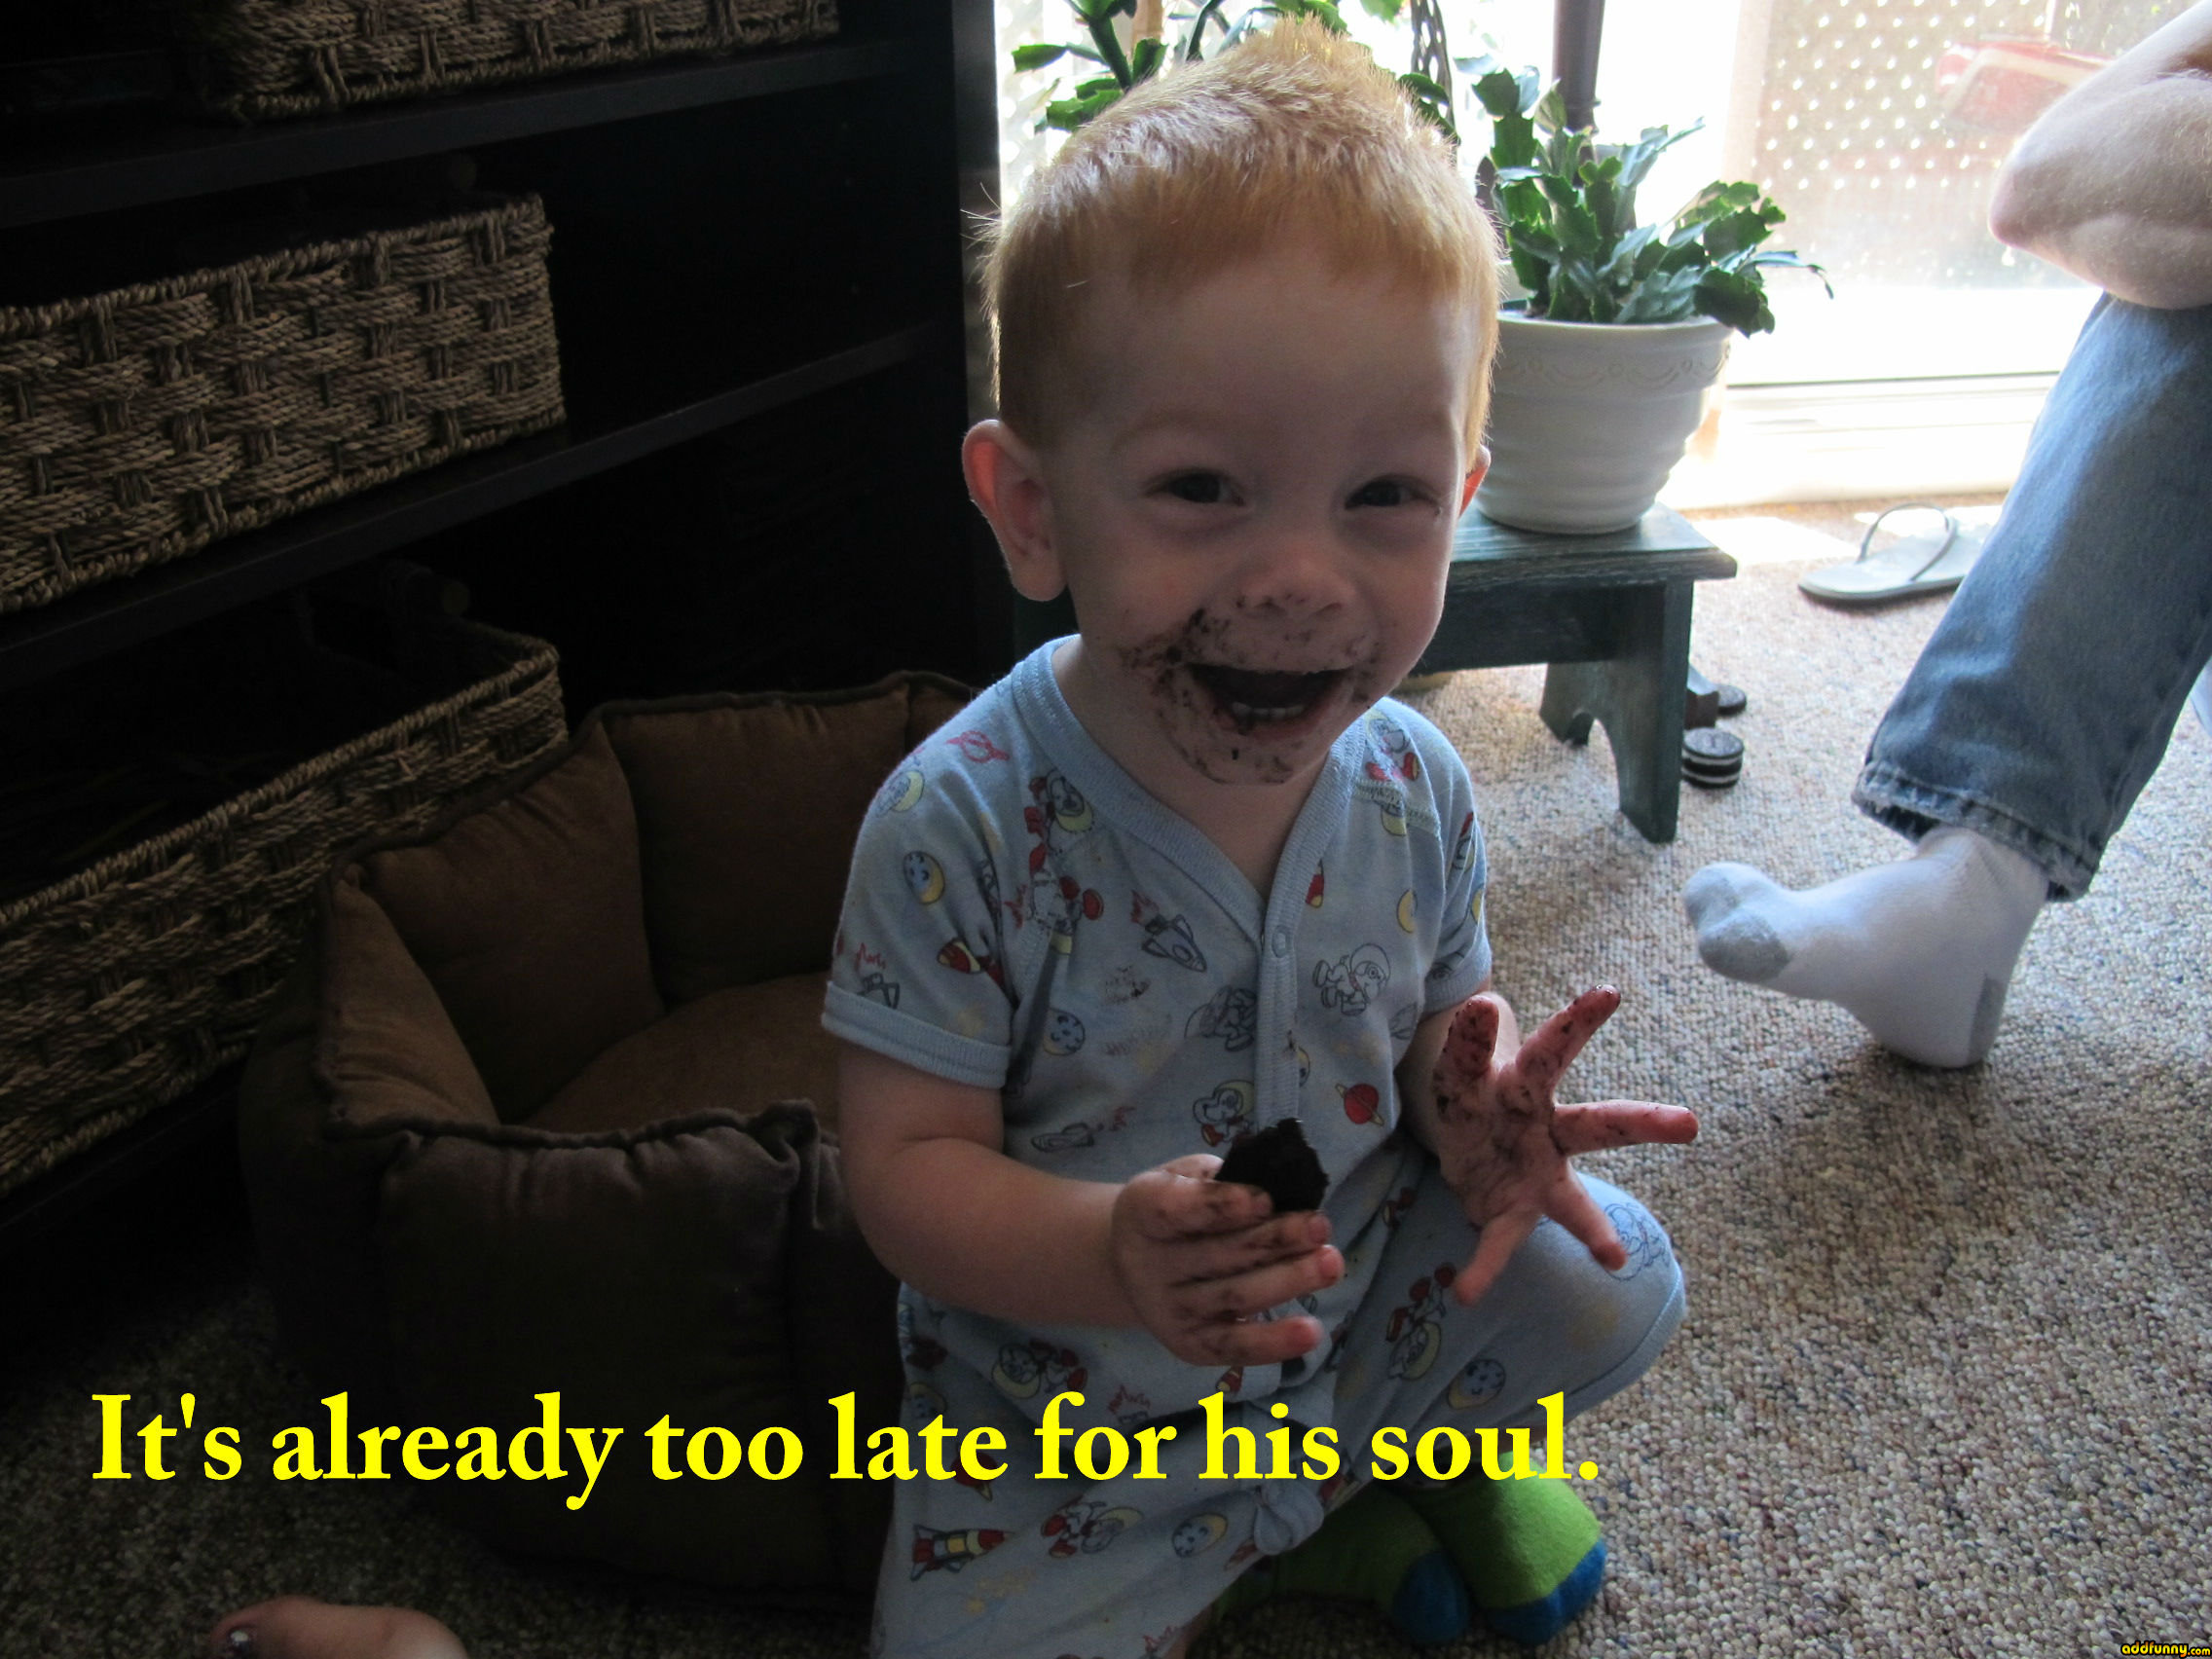 Funny Baby Jokes 7 Widescreen Wallpaper - Funnypicture.org